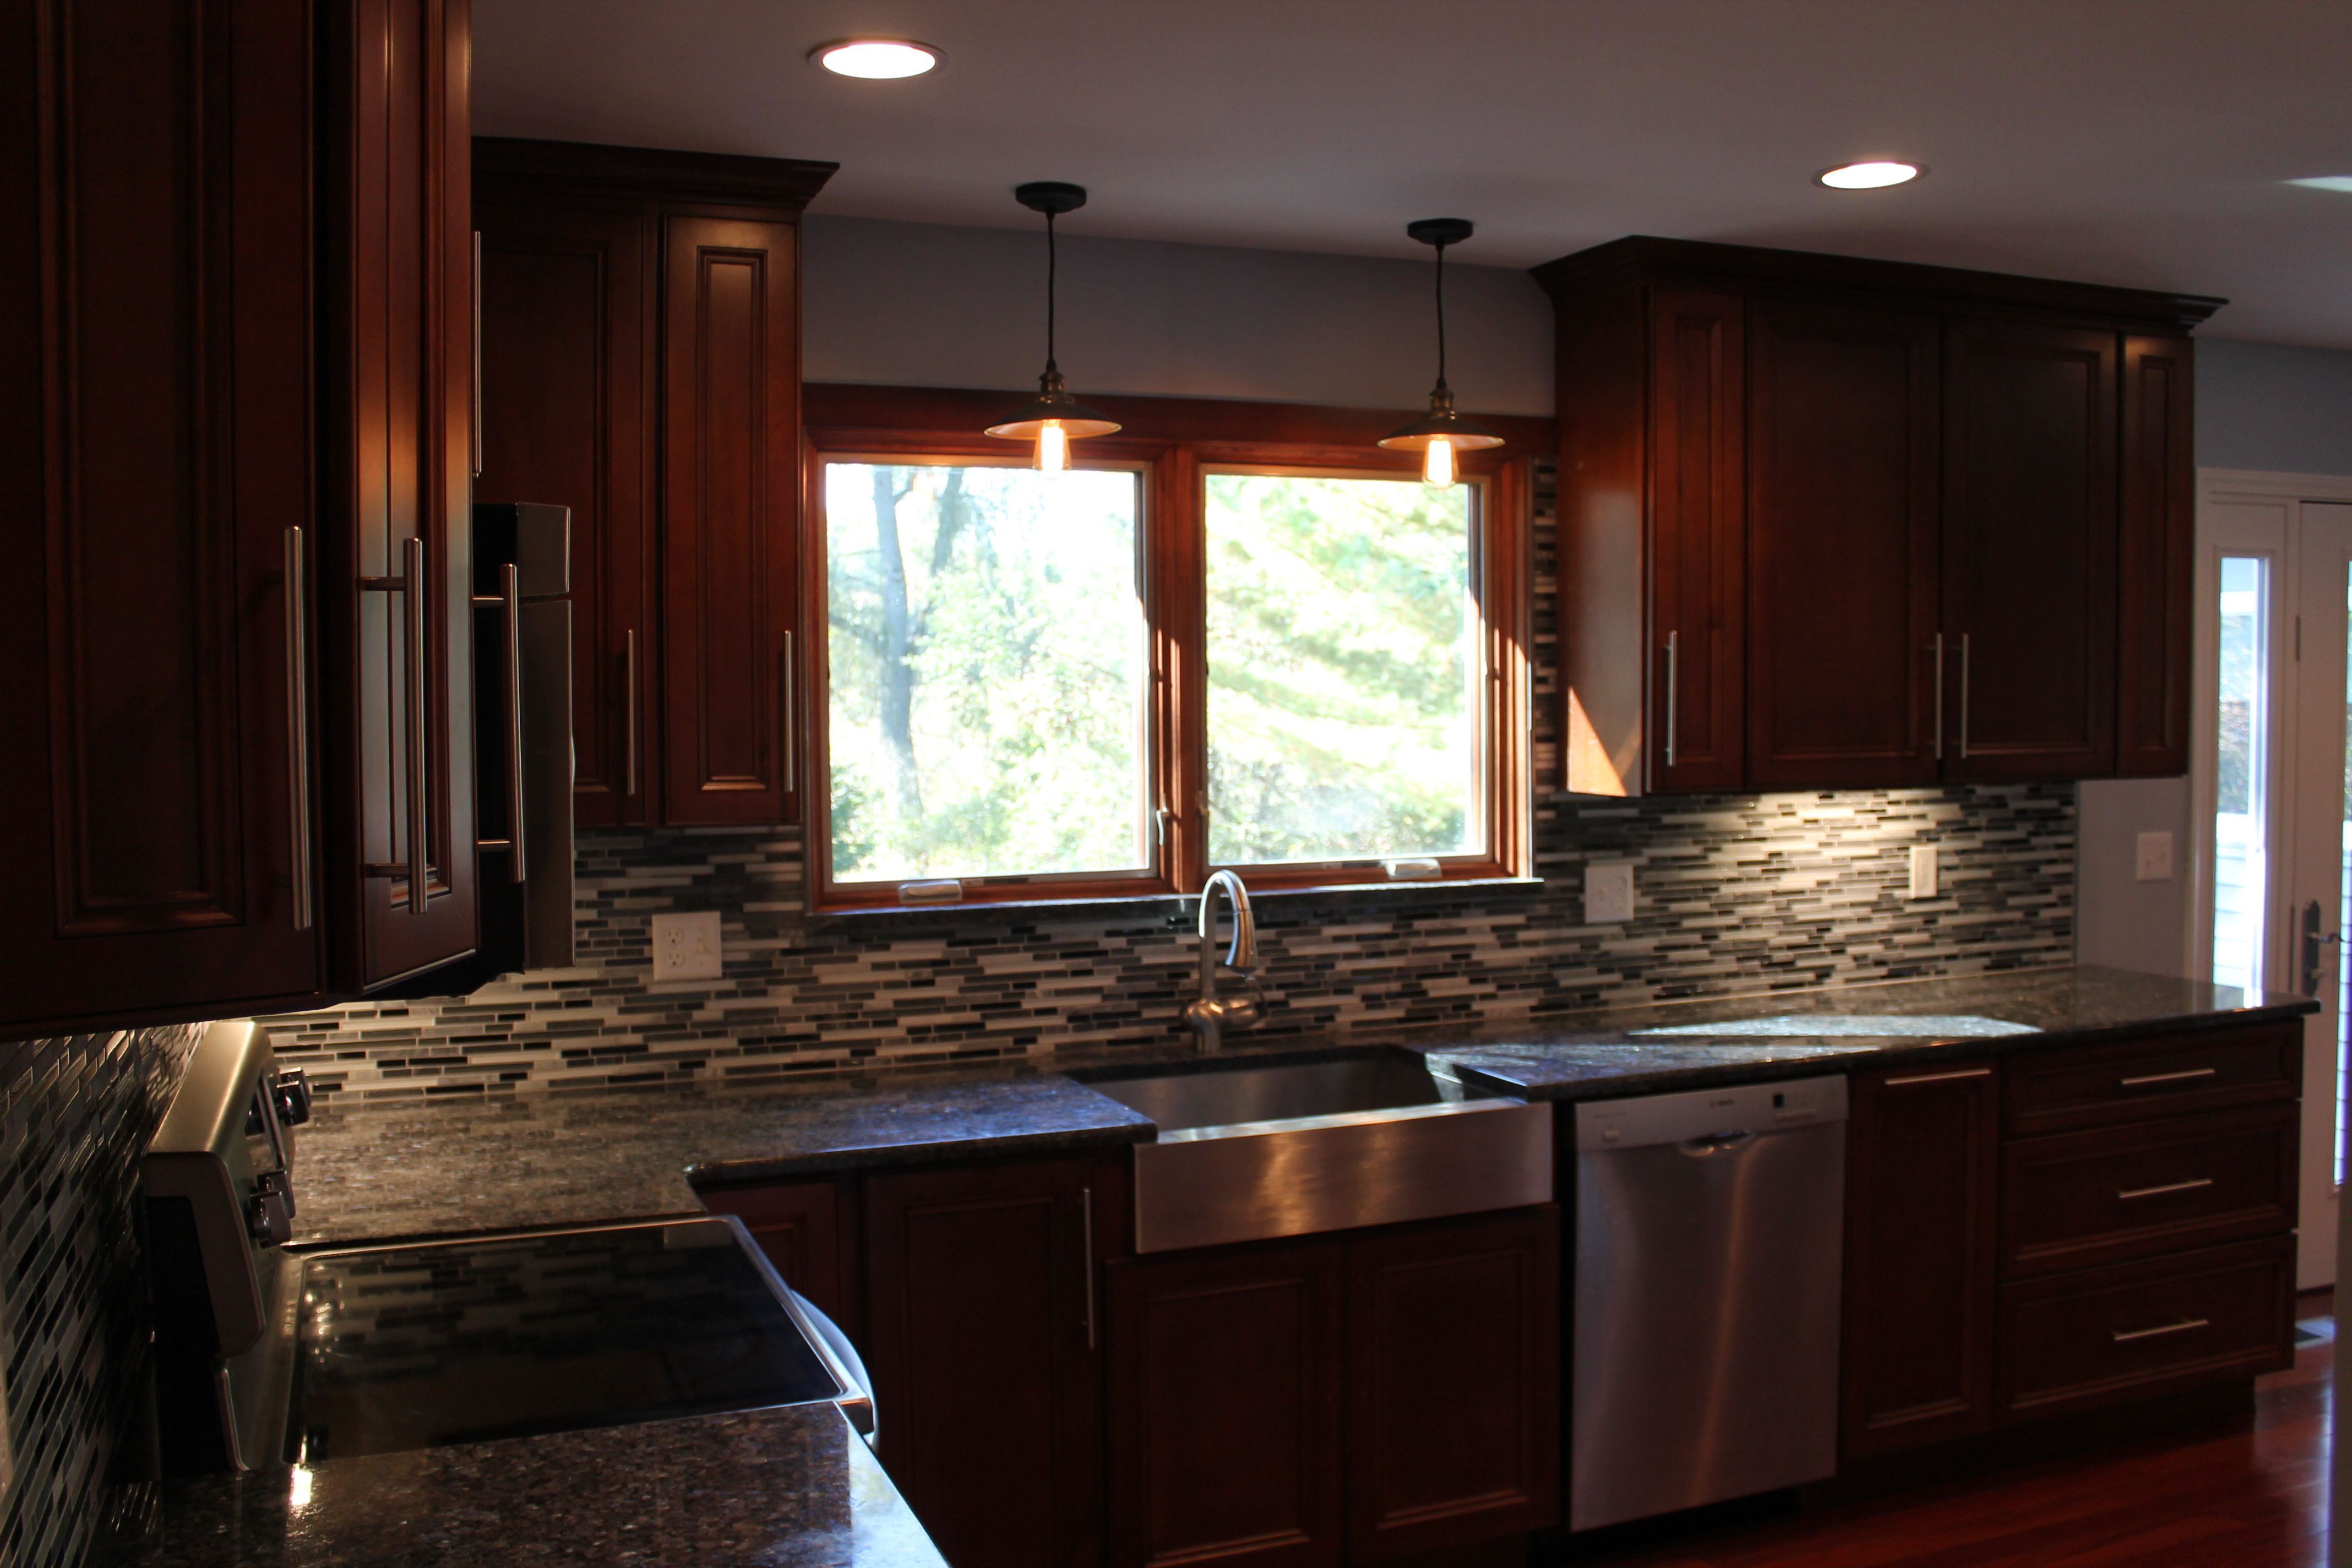 Best Kitchen Gallery: New Pioneer Cabi S With Blue Pearl Granite Kitchen Pinterest of Pioneer Kitchen Cabinets on cal-ite.com